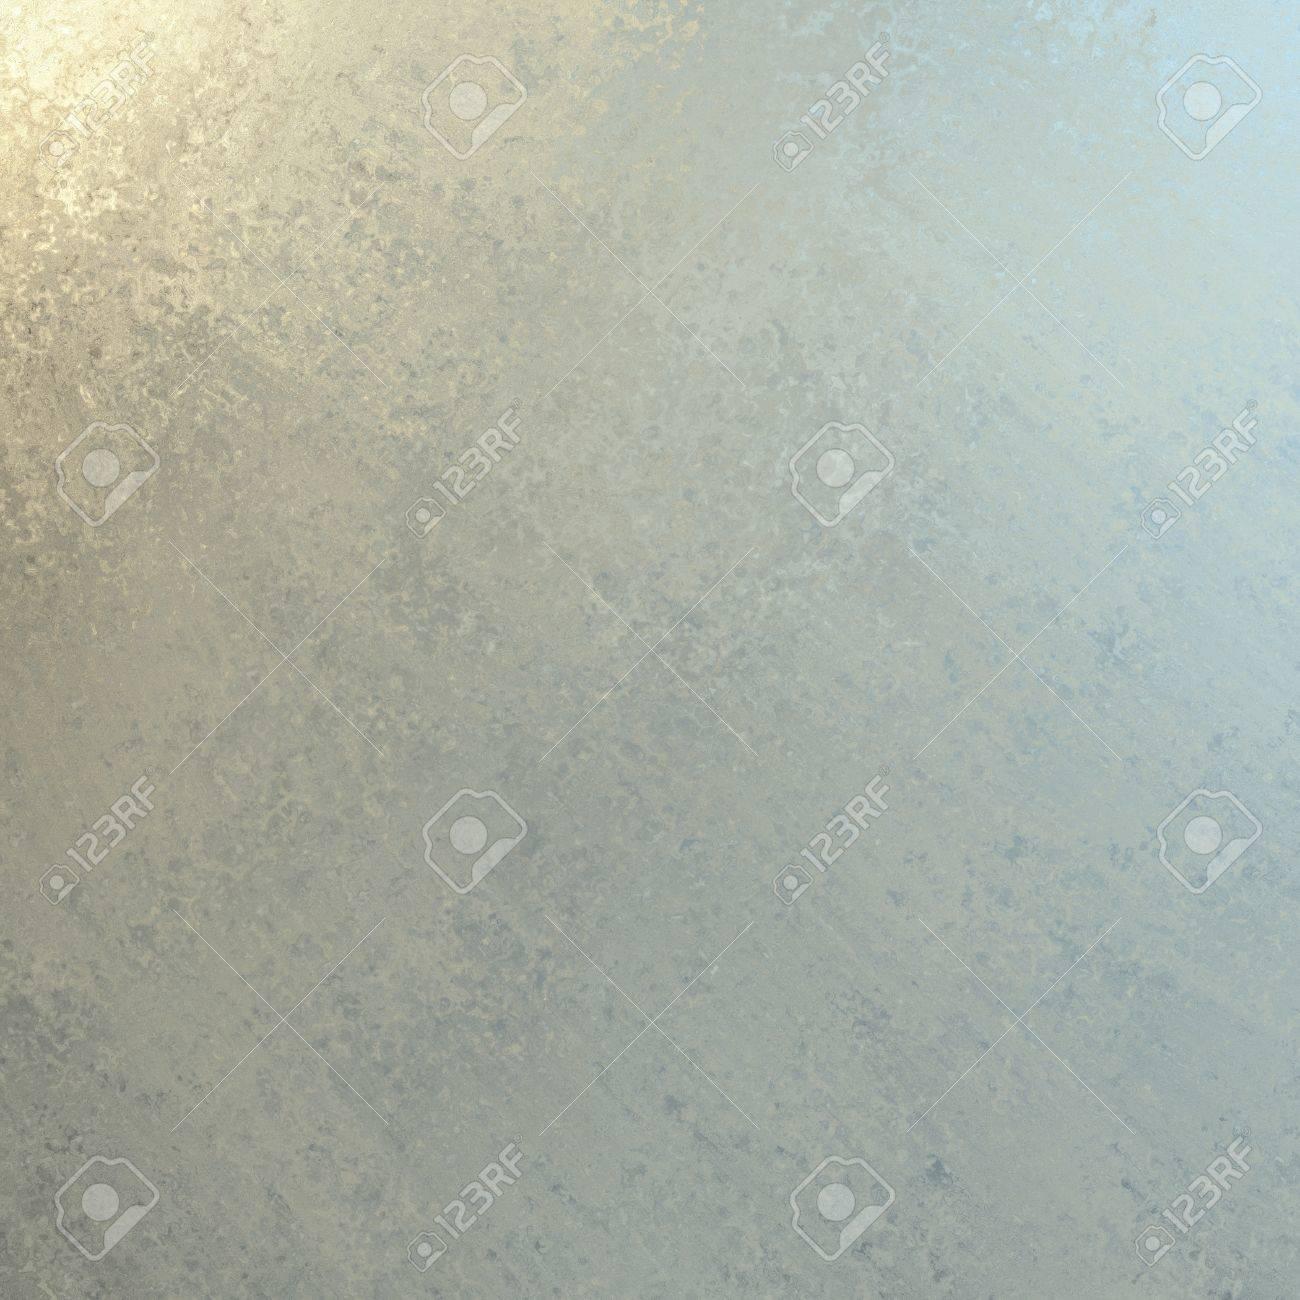 corner lighting. Stock Photo - Yellowed Gray Background Texture And Corner Lighting